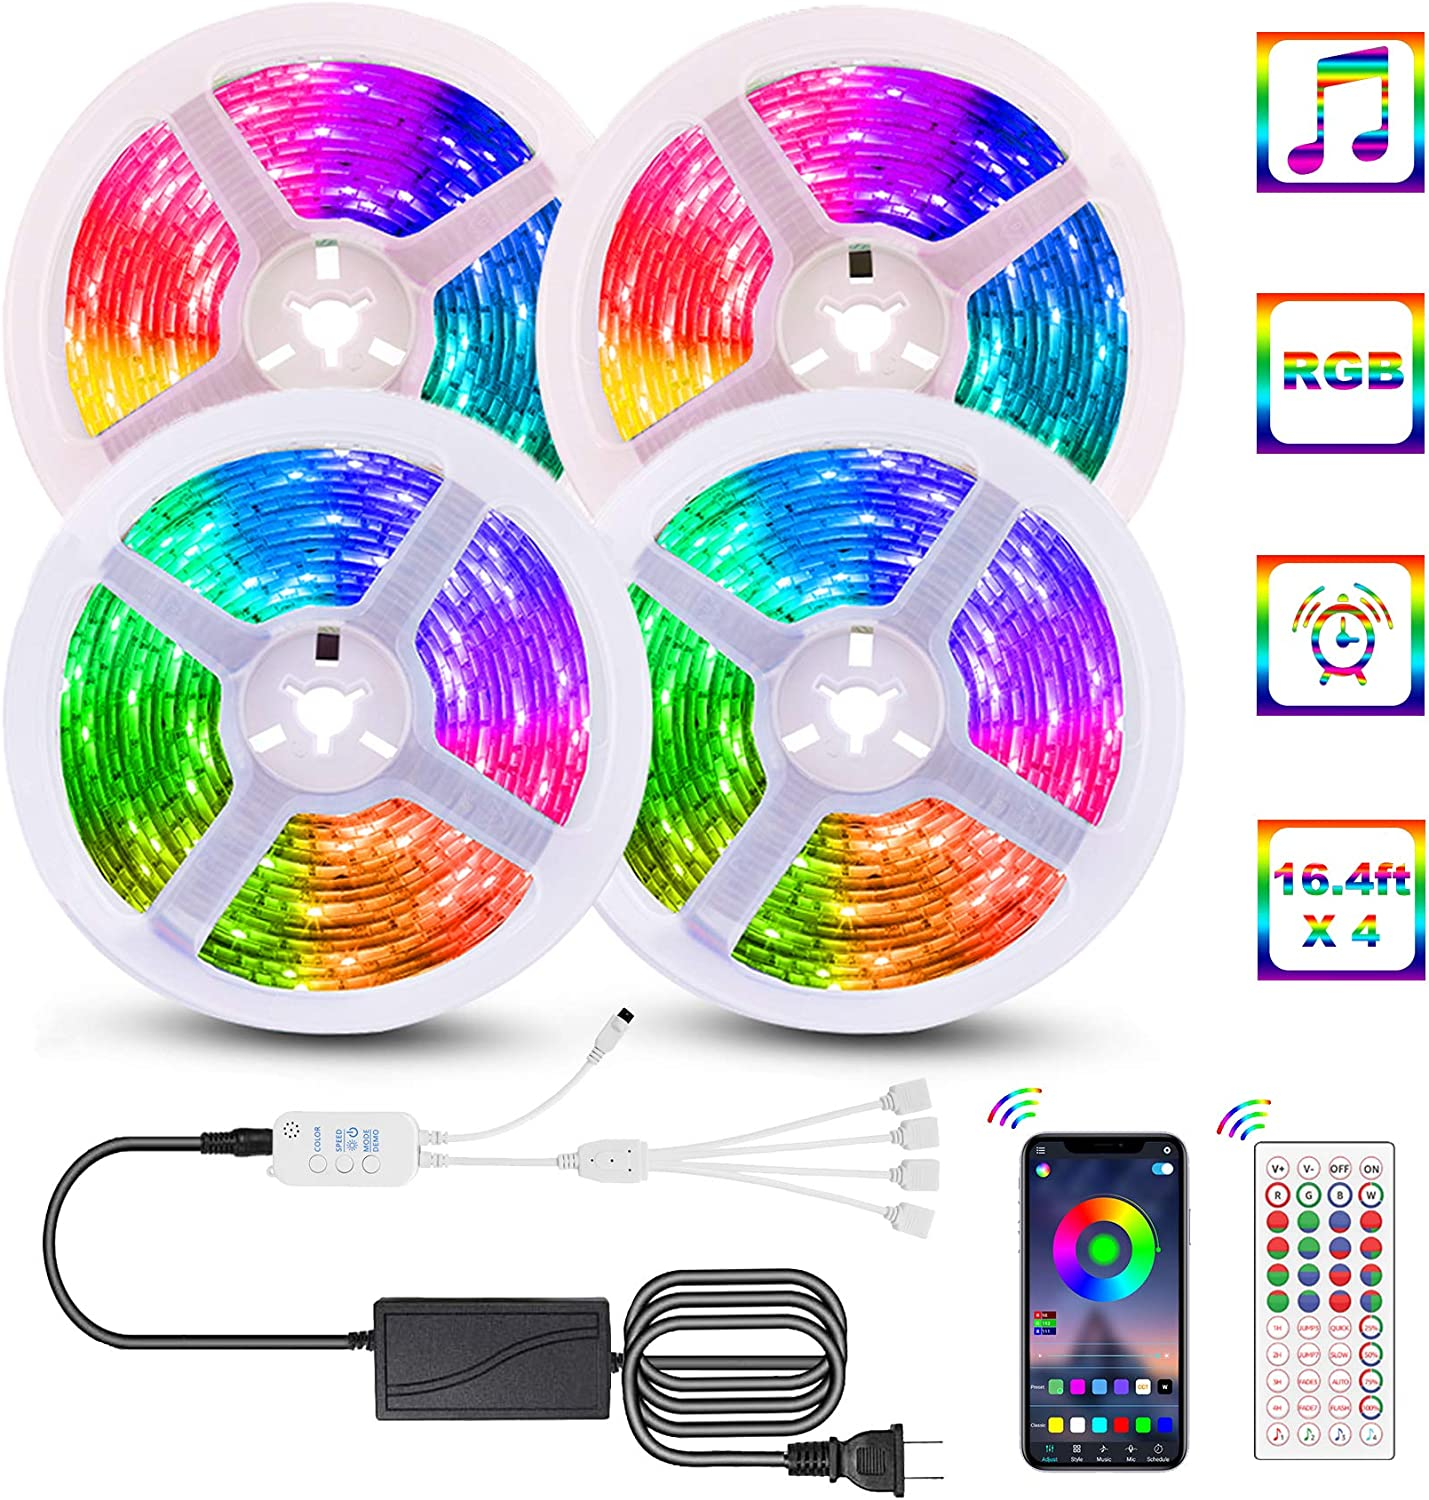 Free Amazon Promo Code 2020 for LED Strip Lights